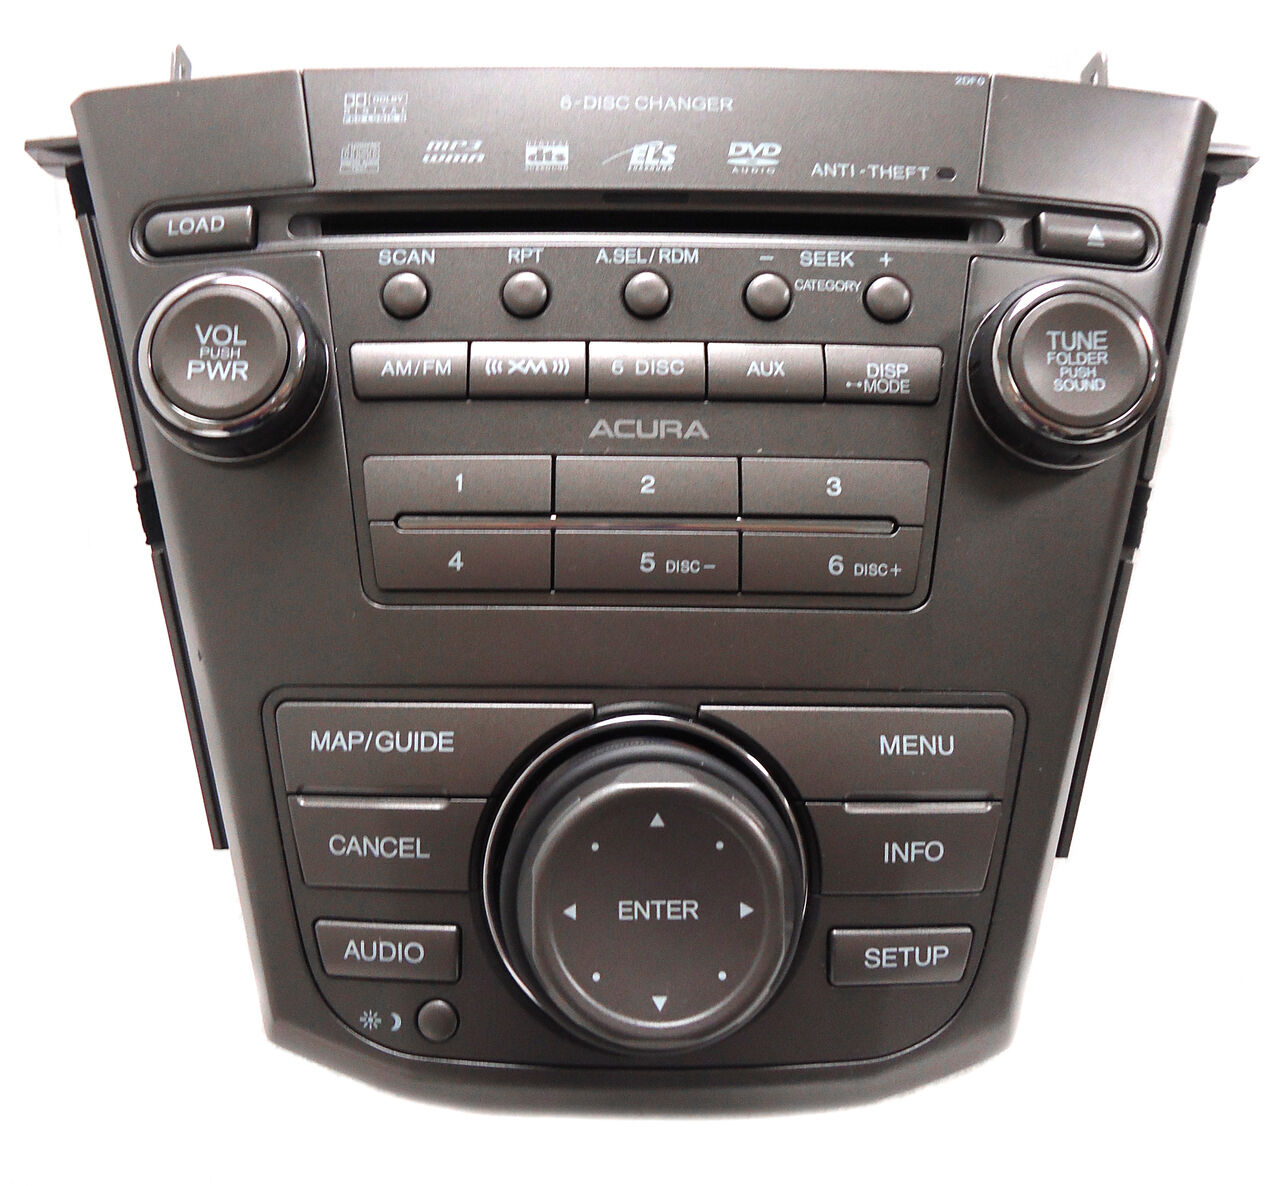 ACURA MDX Navigation GPS Radio 6 Disc CD Changer Player